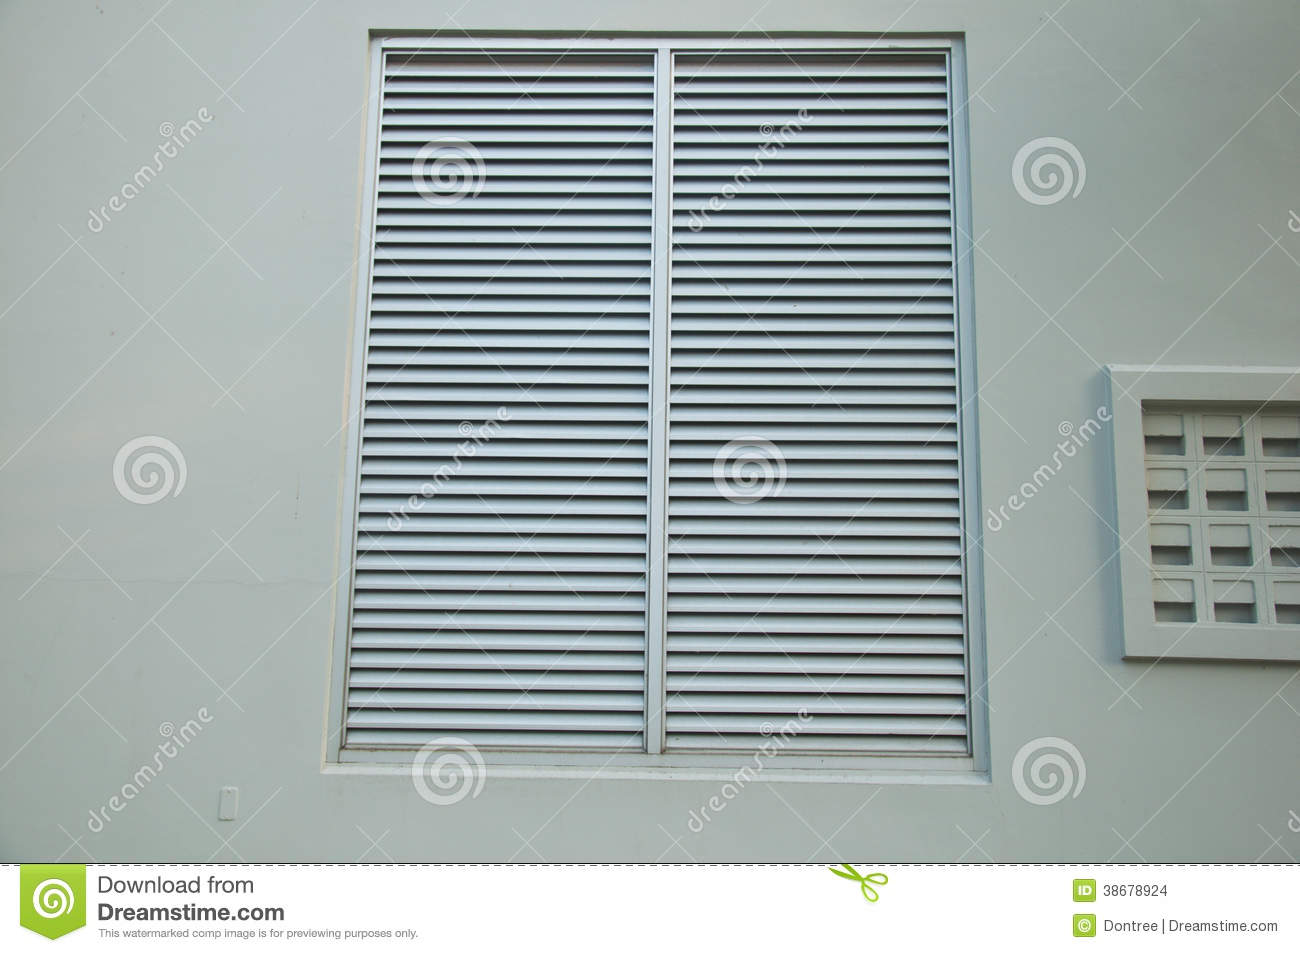 Ventilation door on a wall stock photo image of design for Door ventilation design